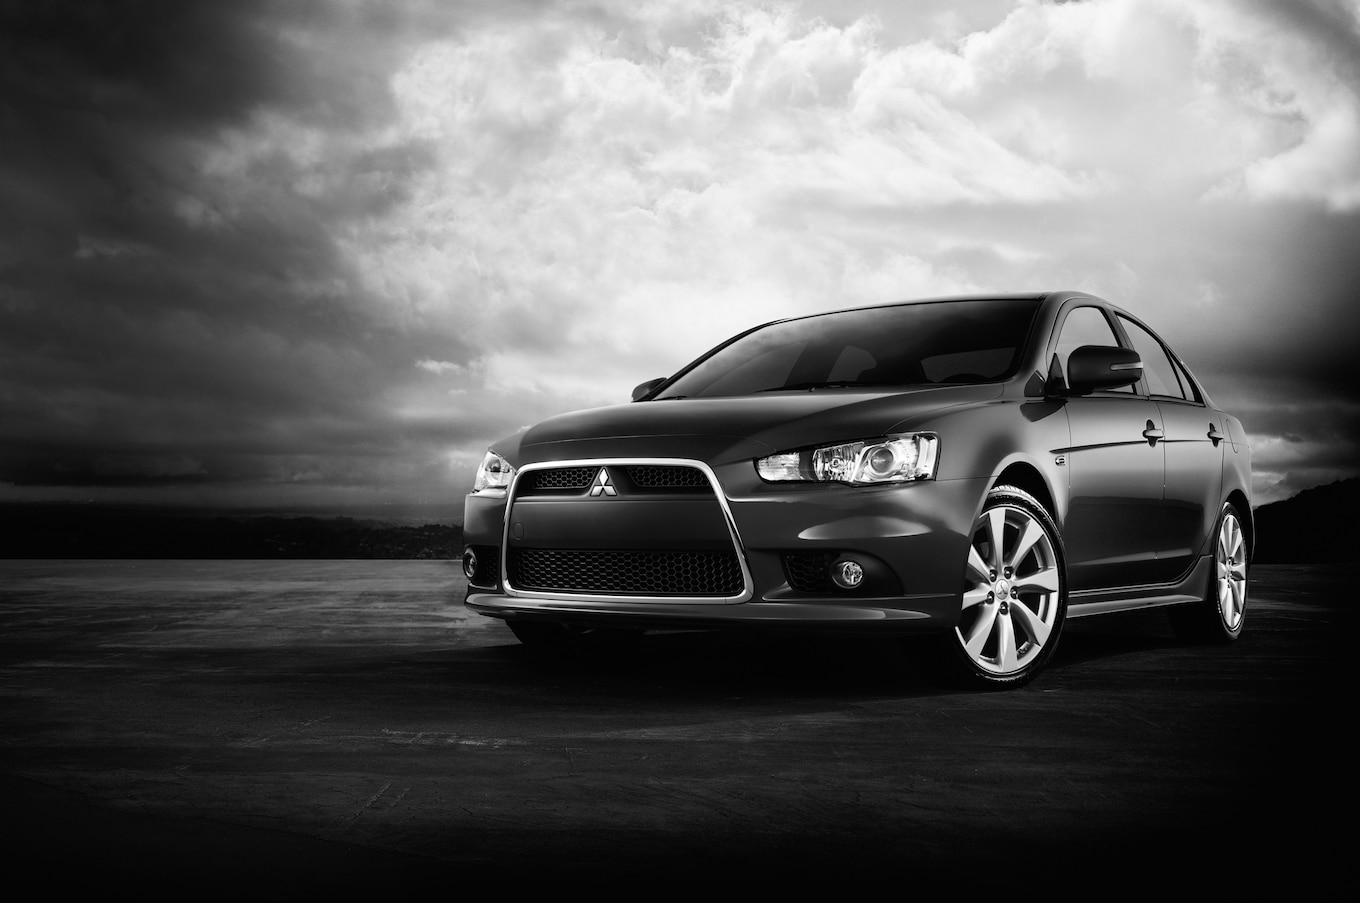 mitsubishi lancer black edition review